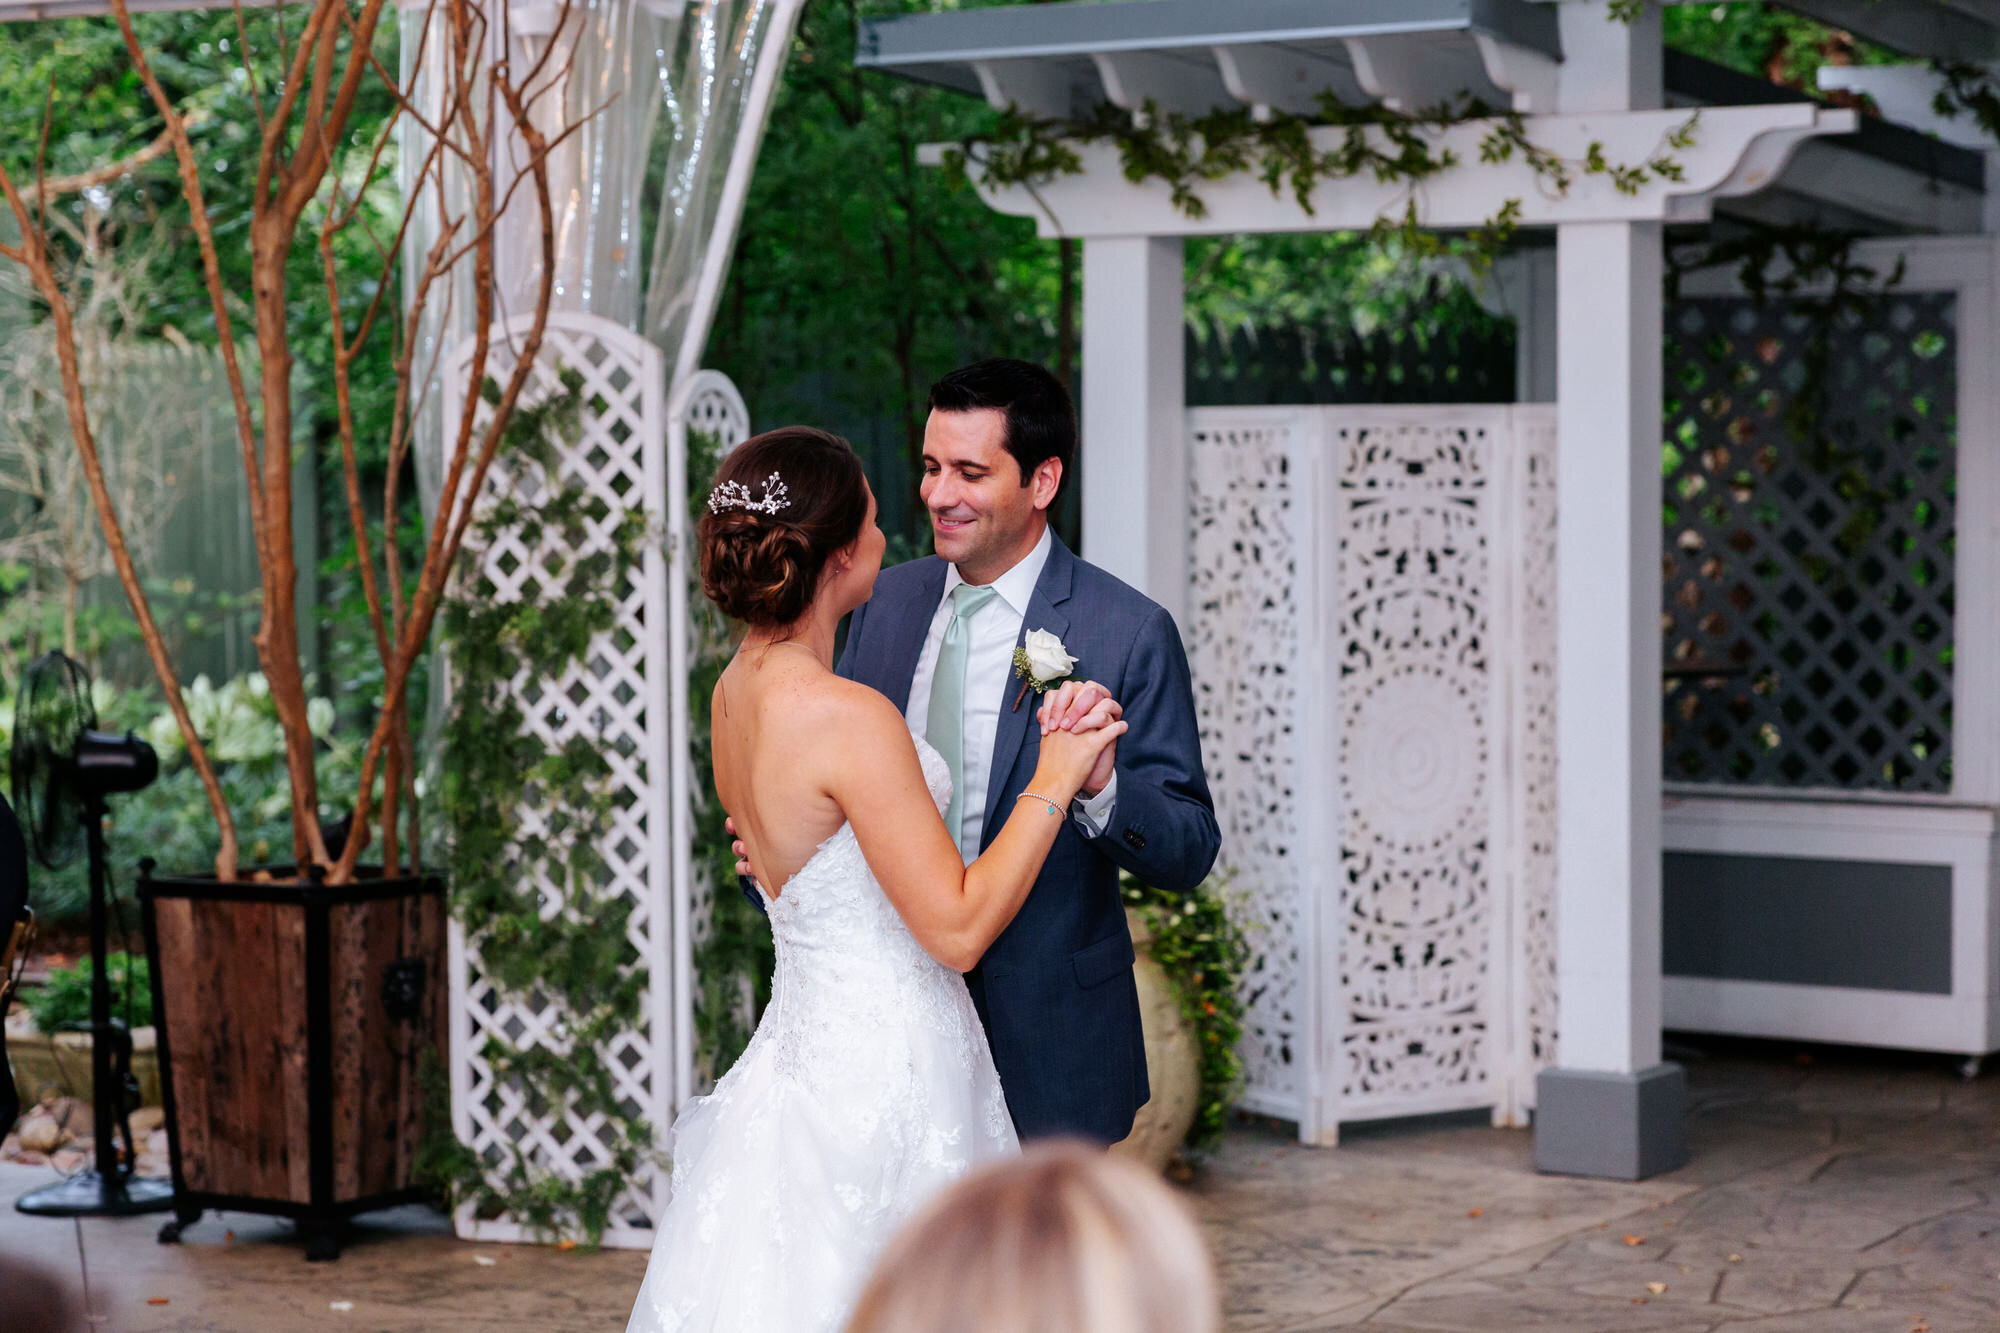 twigs-tempietto-wedding-greenville-downtown-360.JPG